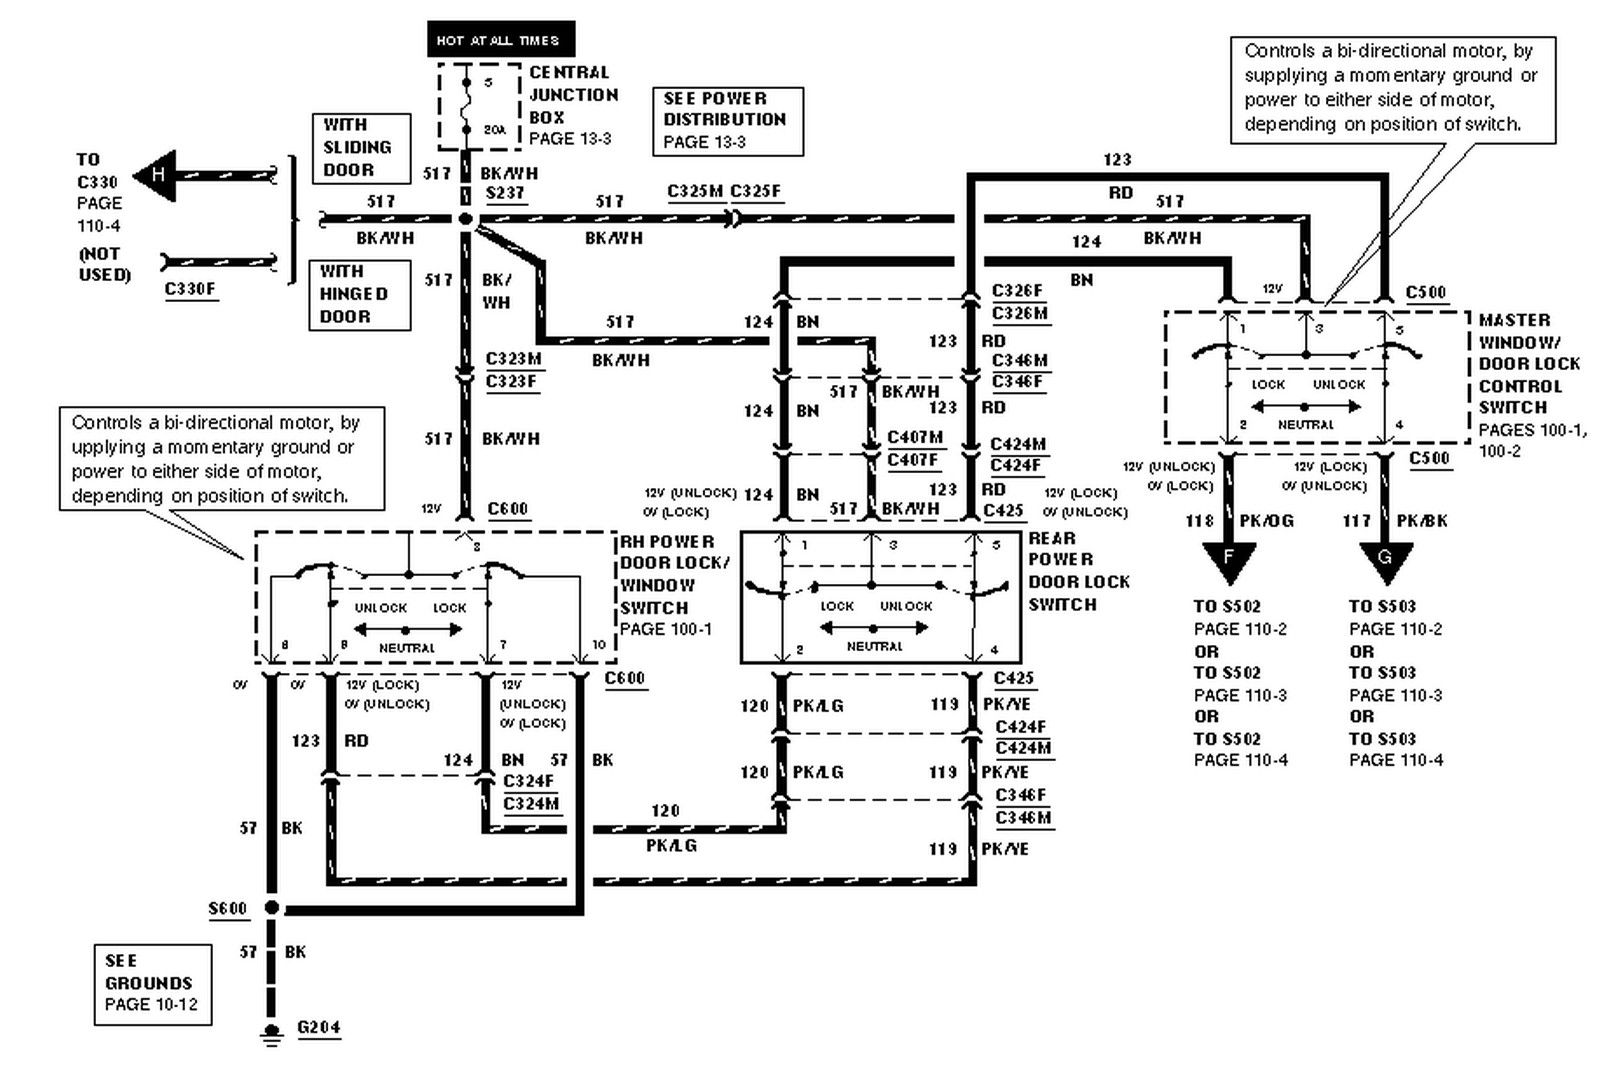 80 2010_11_05_235941_99_e_350_power_door_lock_wiring_diagram_e574233ae37af9677ff5fddb790386a28f9dd7ad 99 f150 wiring diagram 99 f150 stereo wiring diagram \u2022 wiring 2003 Ford Explorer Wiring Diagram at bakdesigns.co